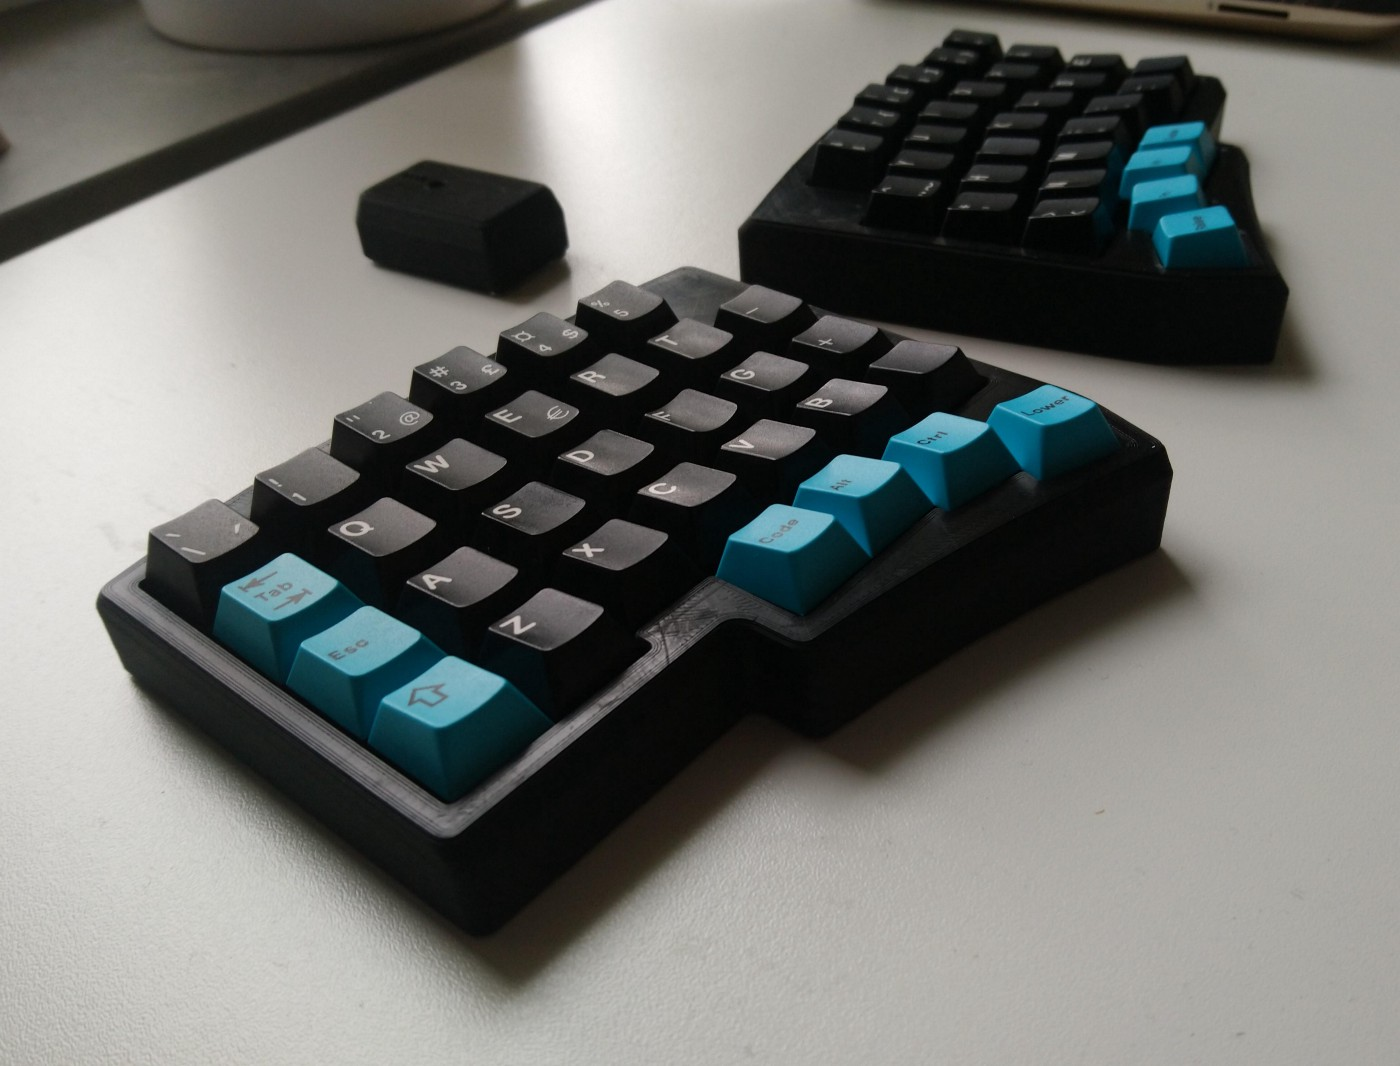 An ergonomic keyboard